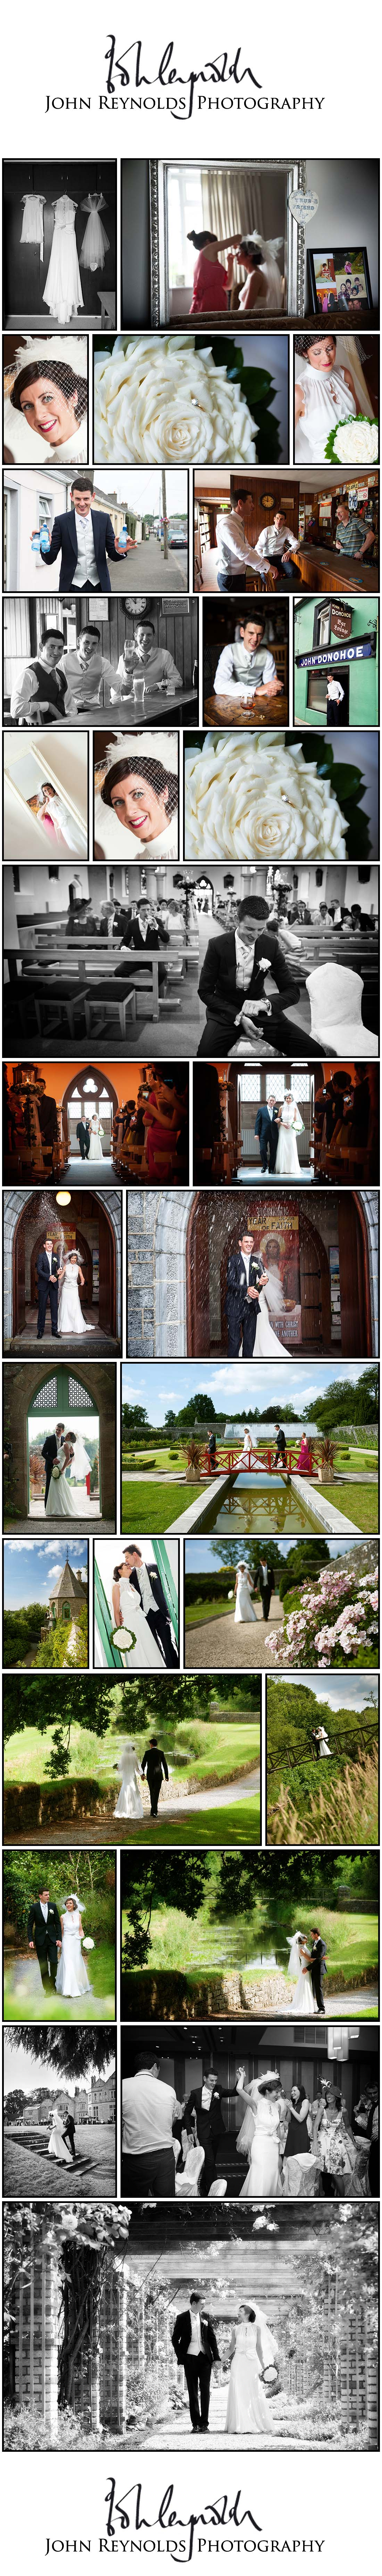 Kathleen & Donal Blog Collage